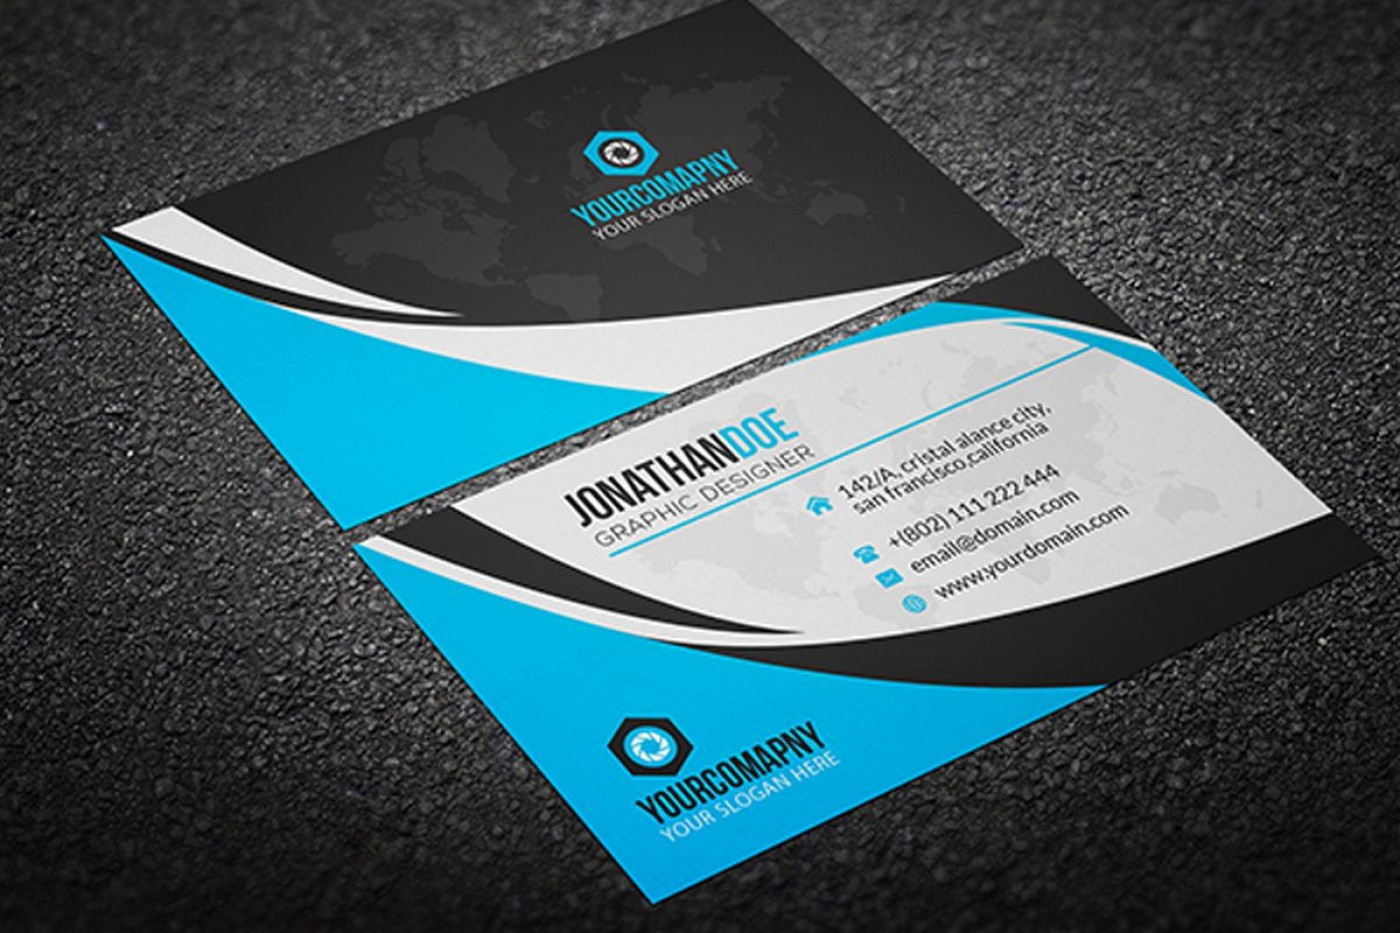 002 Fearsome Psd Busines Card Template Design  With Bleed And Crop Mark Vistaprint Free1400